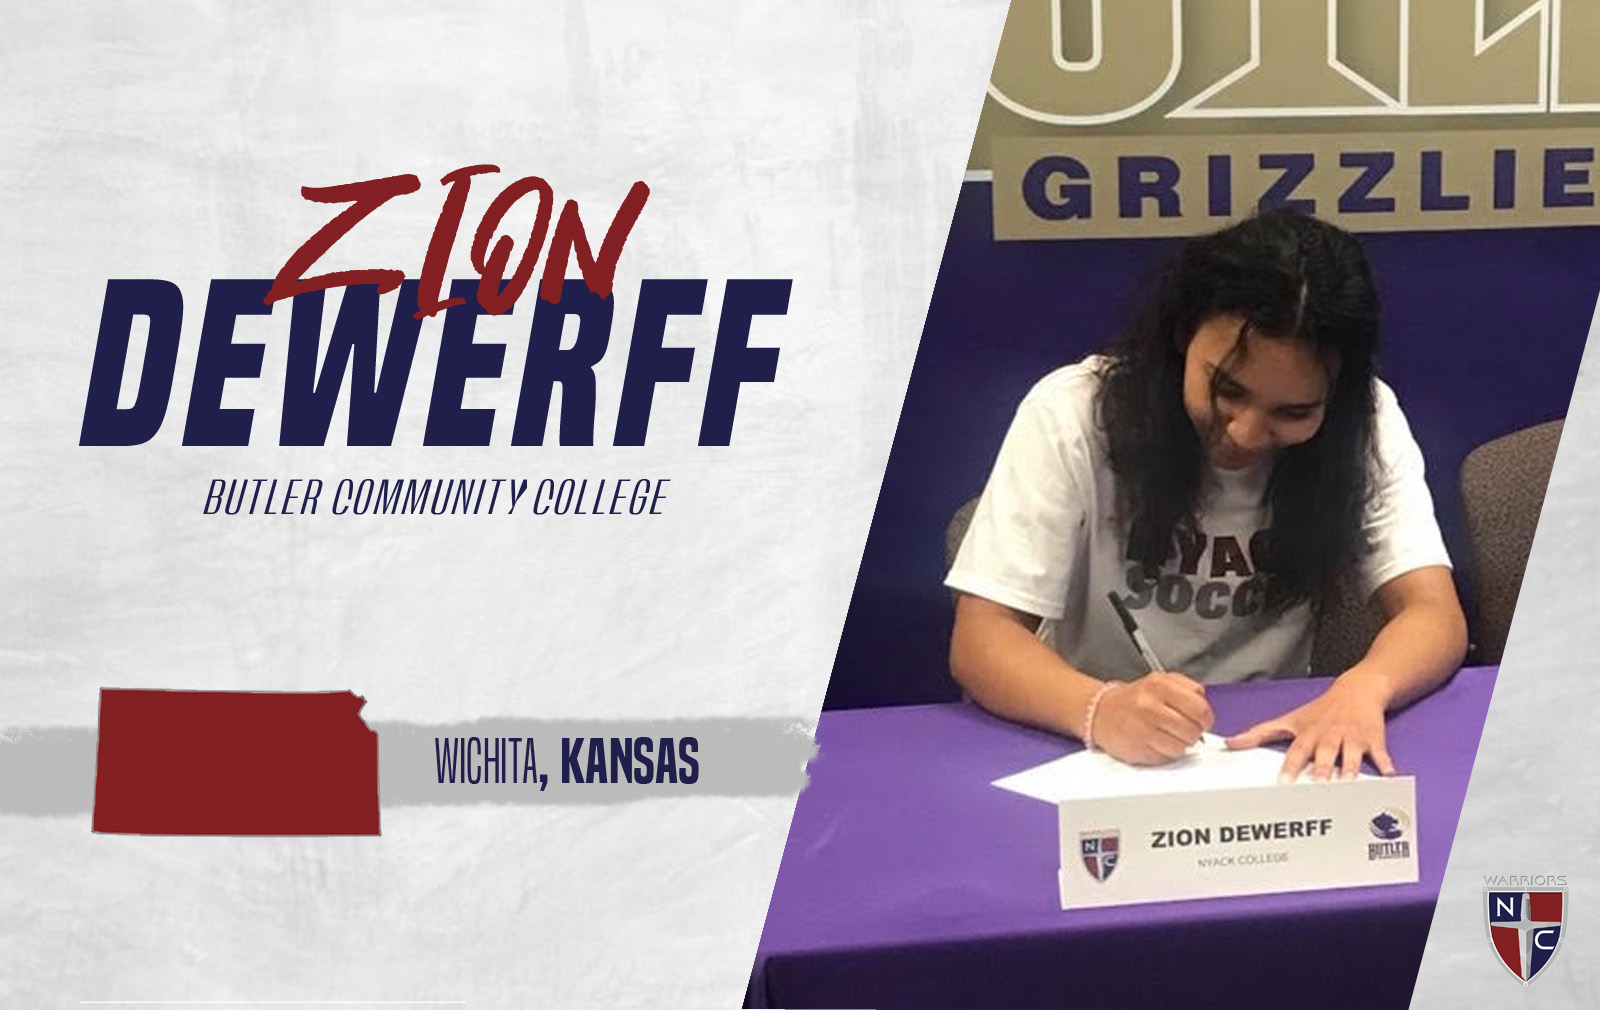 Women's Soccer Adds Zion Dewerff to the 2019 Roster